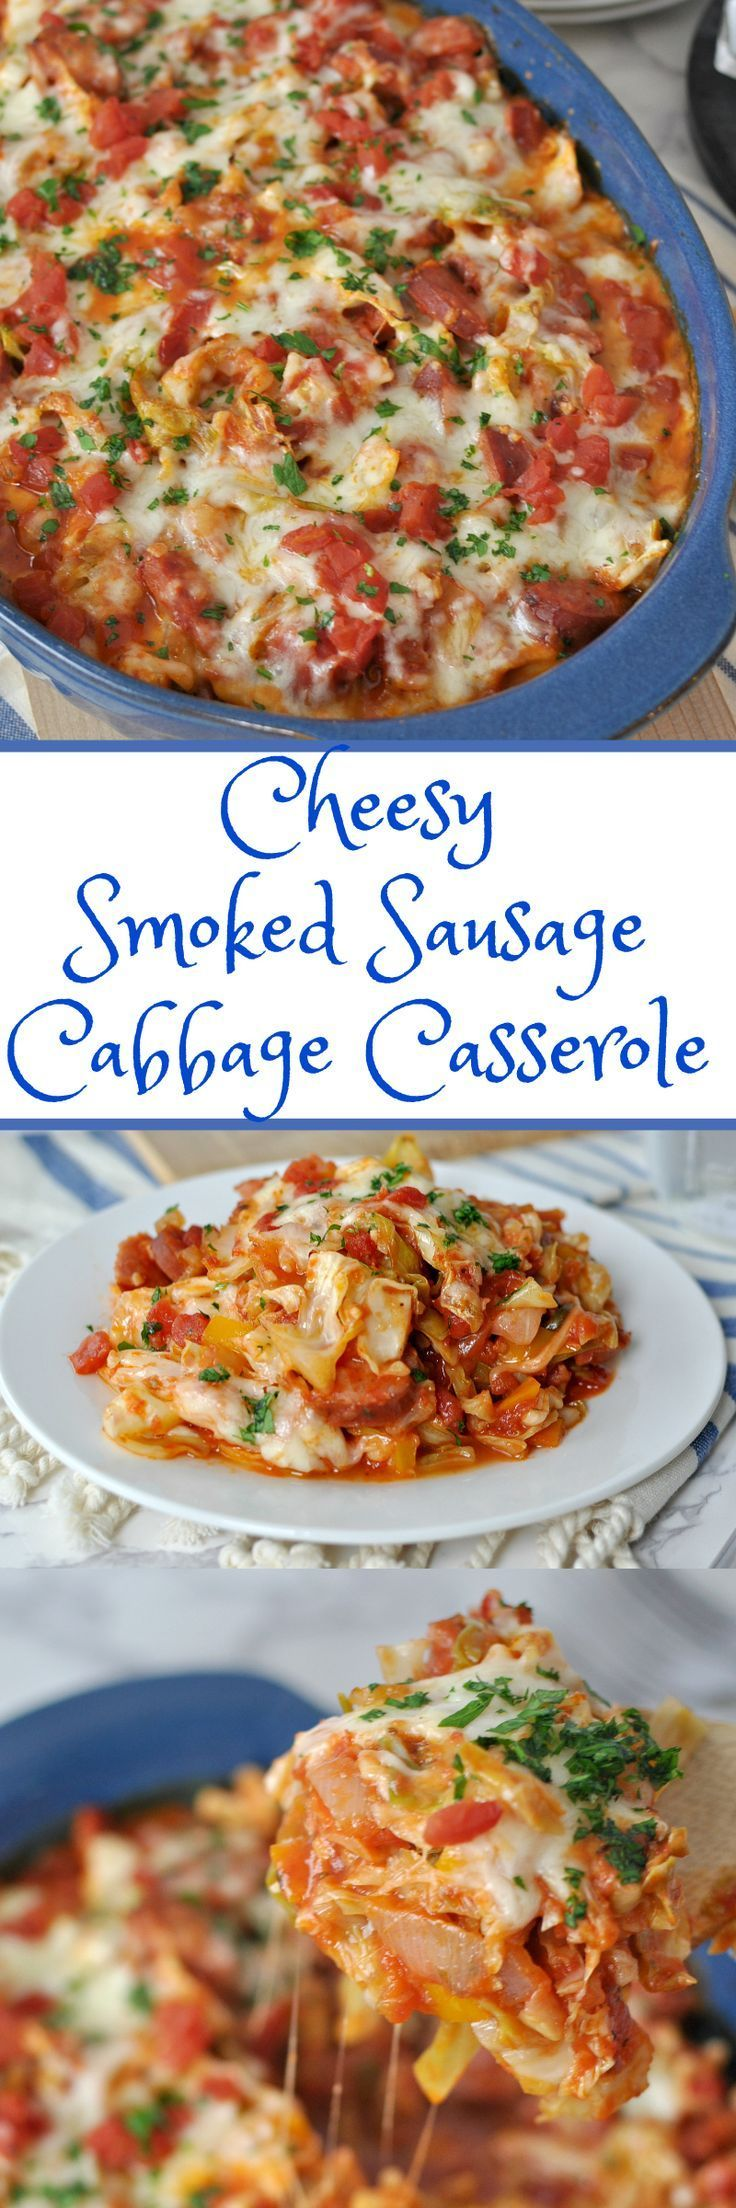 Cheesy Sausage and Cabbage Casserole | Peace Love and Low Carb  via @PeaceLoveLoCarb